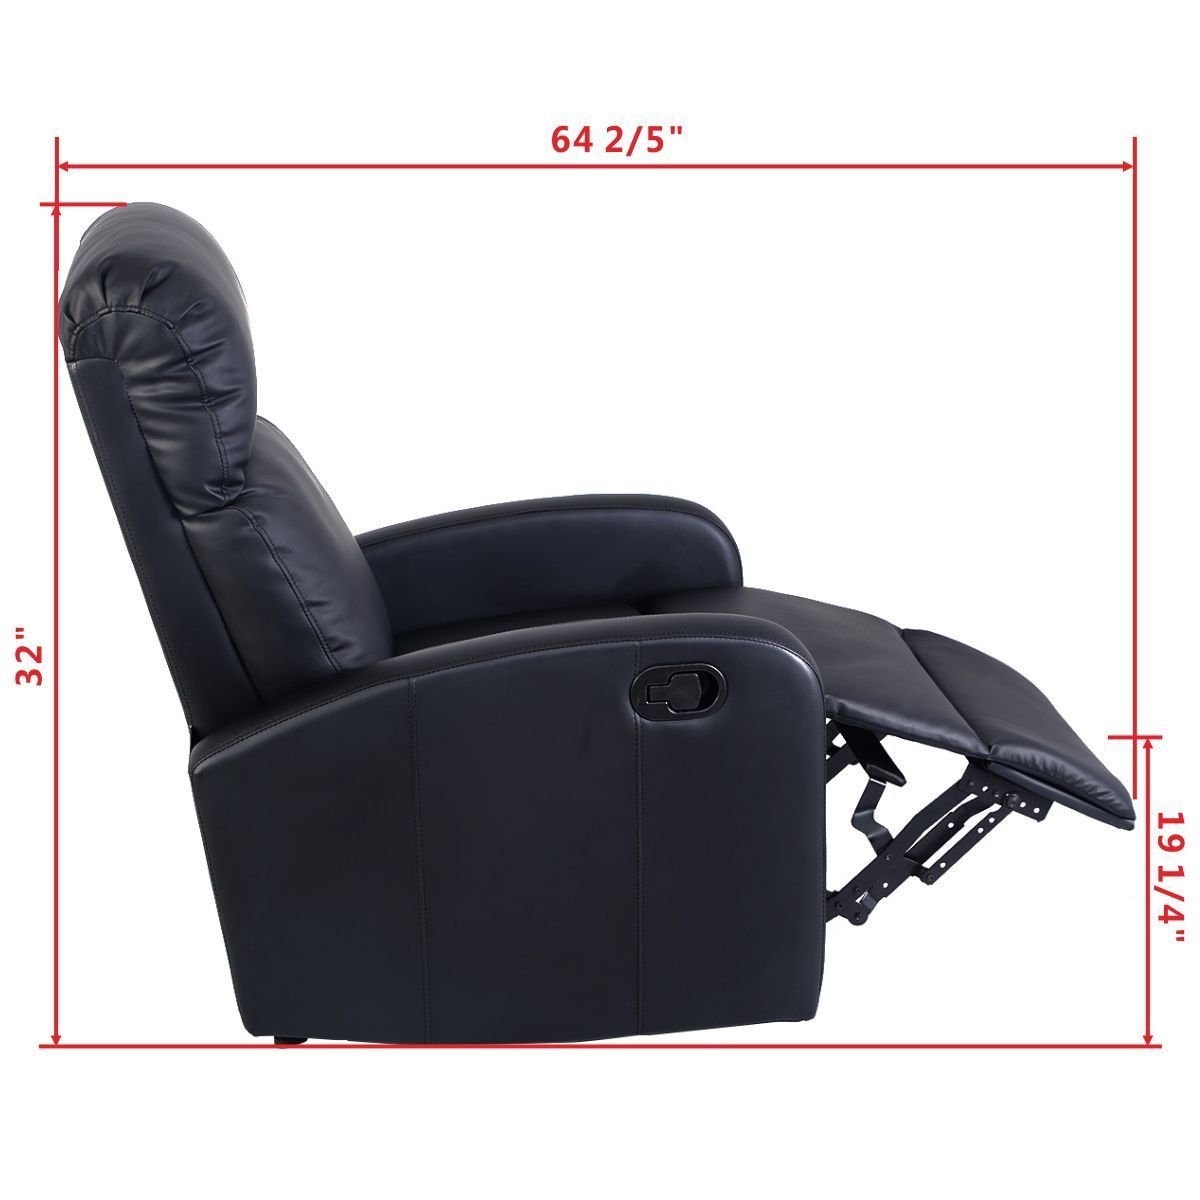 Amazon.com: Giantex Manual Recliner Chair Black Lounger Leather Sofa Seat  Home Theater: Kitchen U0026 Dining